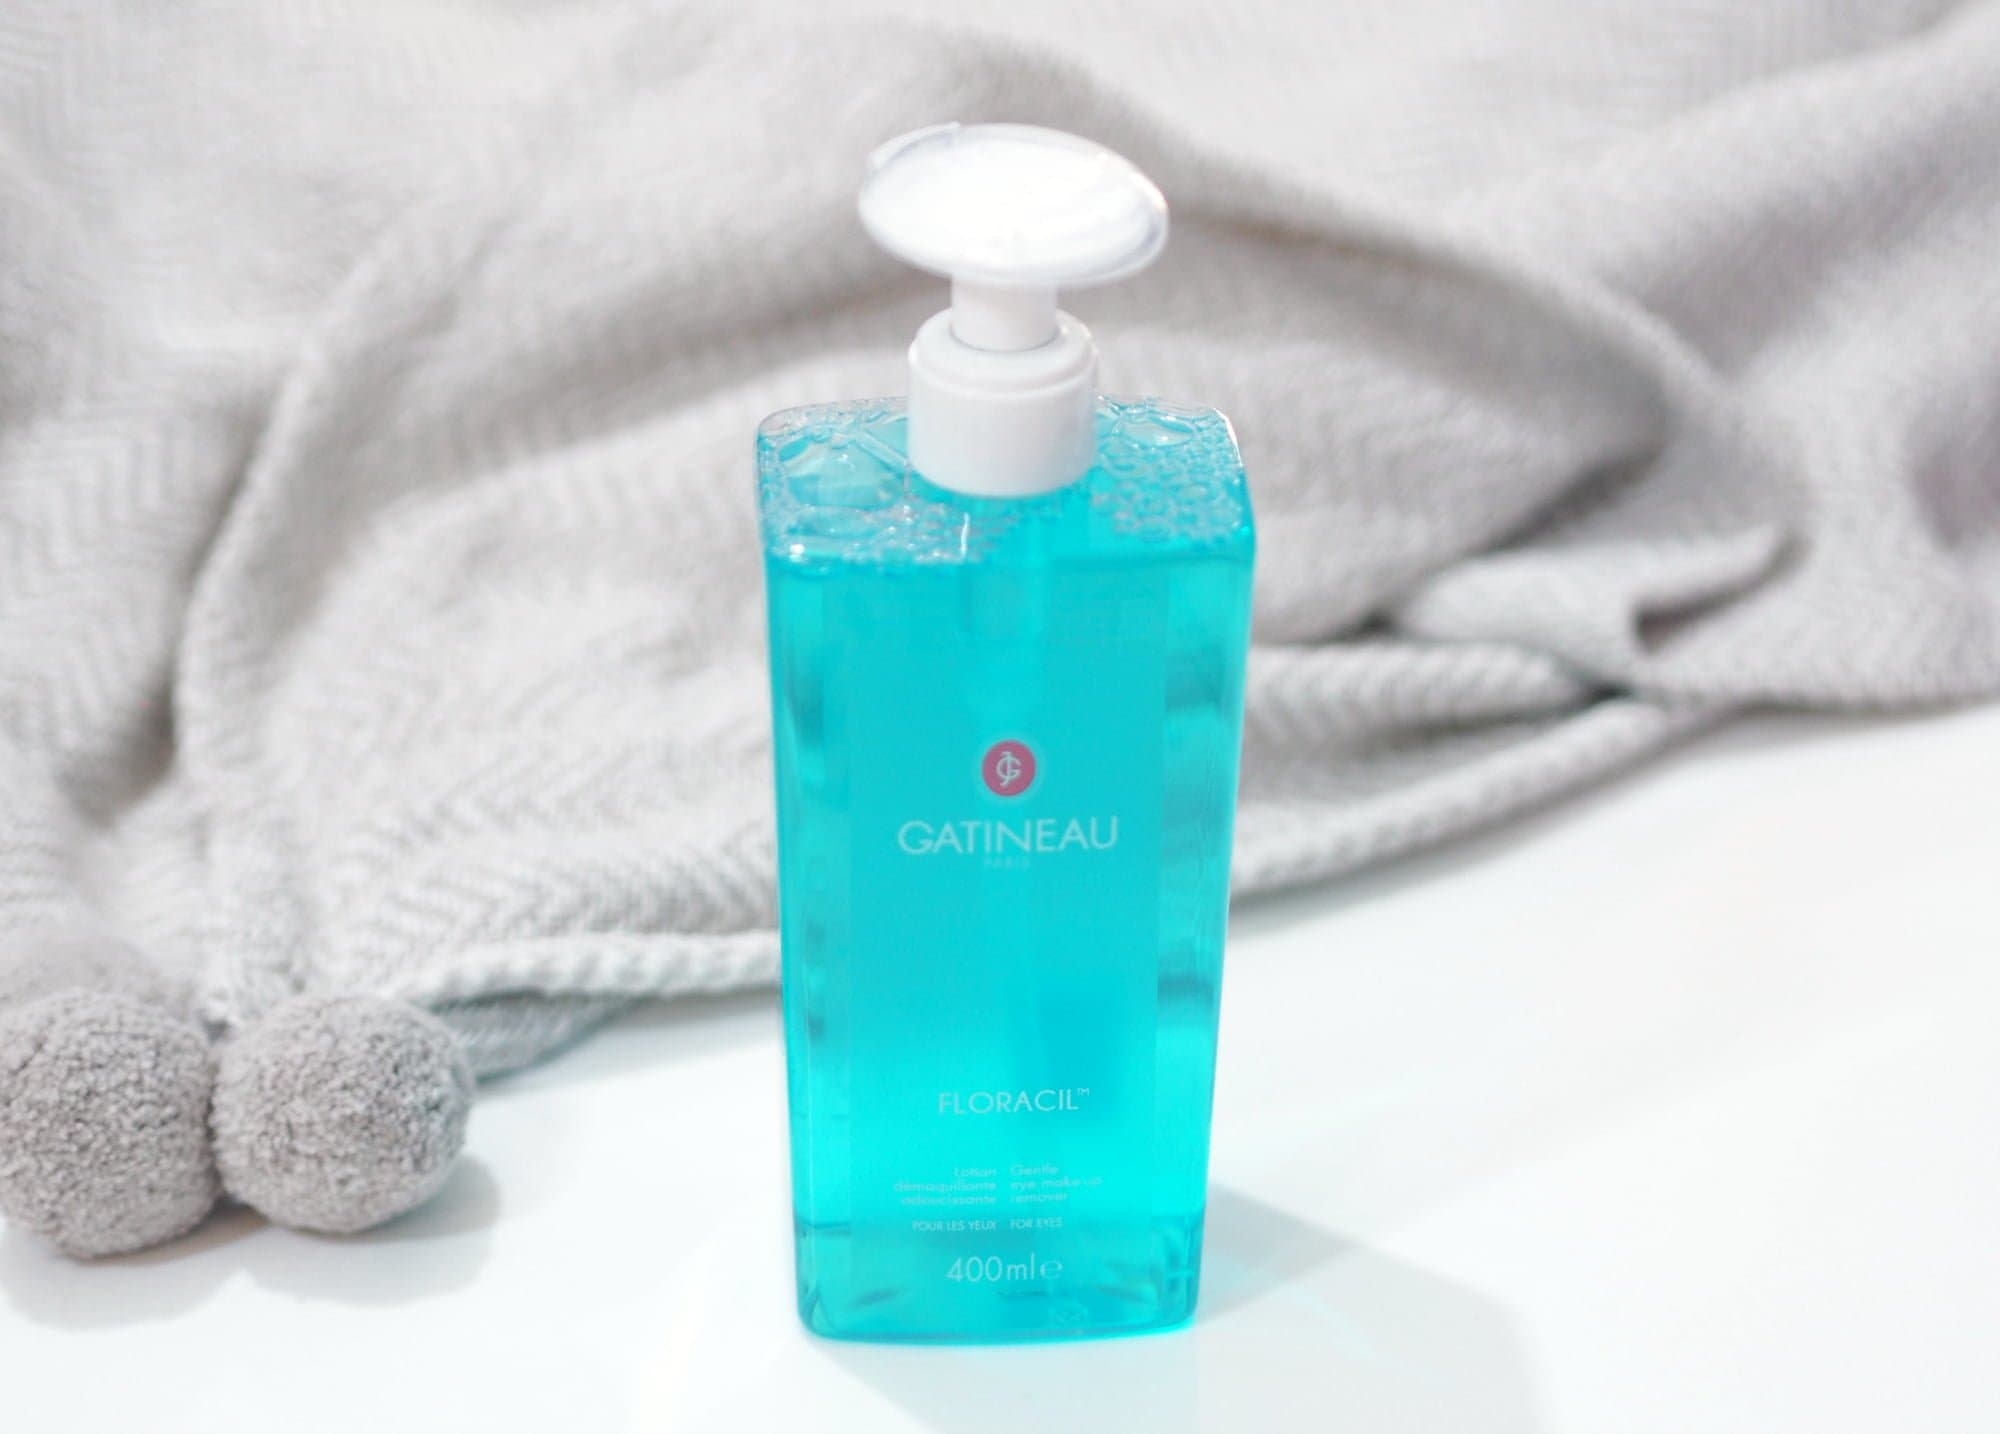 Gatineau Floracil Gentle Eye Makeup Remover Returns!